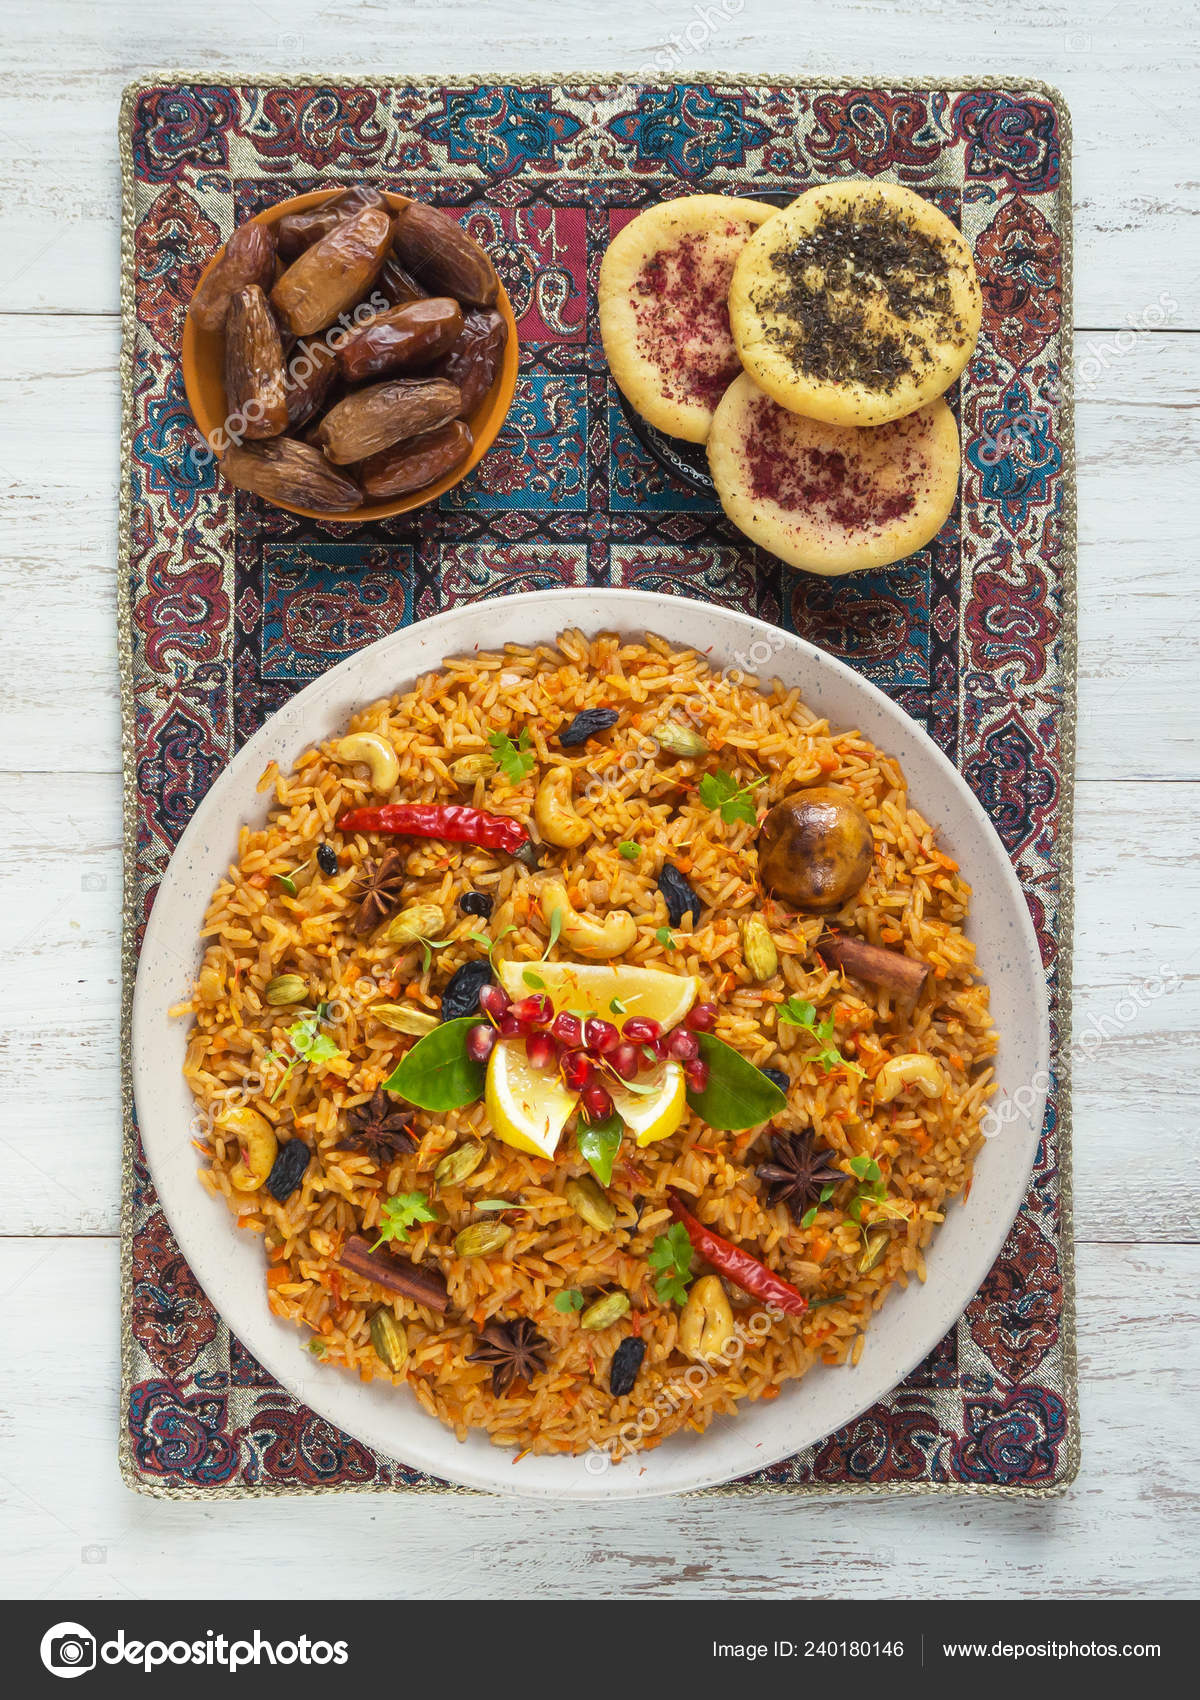 Cuisines Similar To Indian Kerala Vegetable Biriyani Indian Cuisine Top View Stock Photo